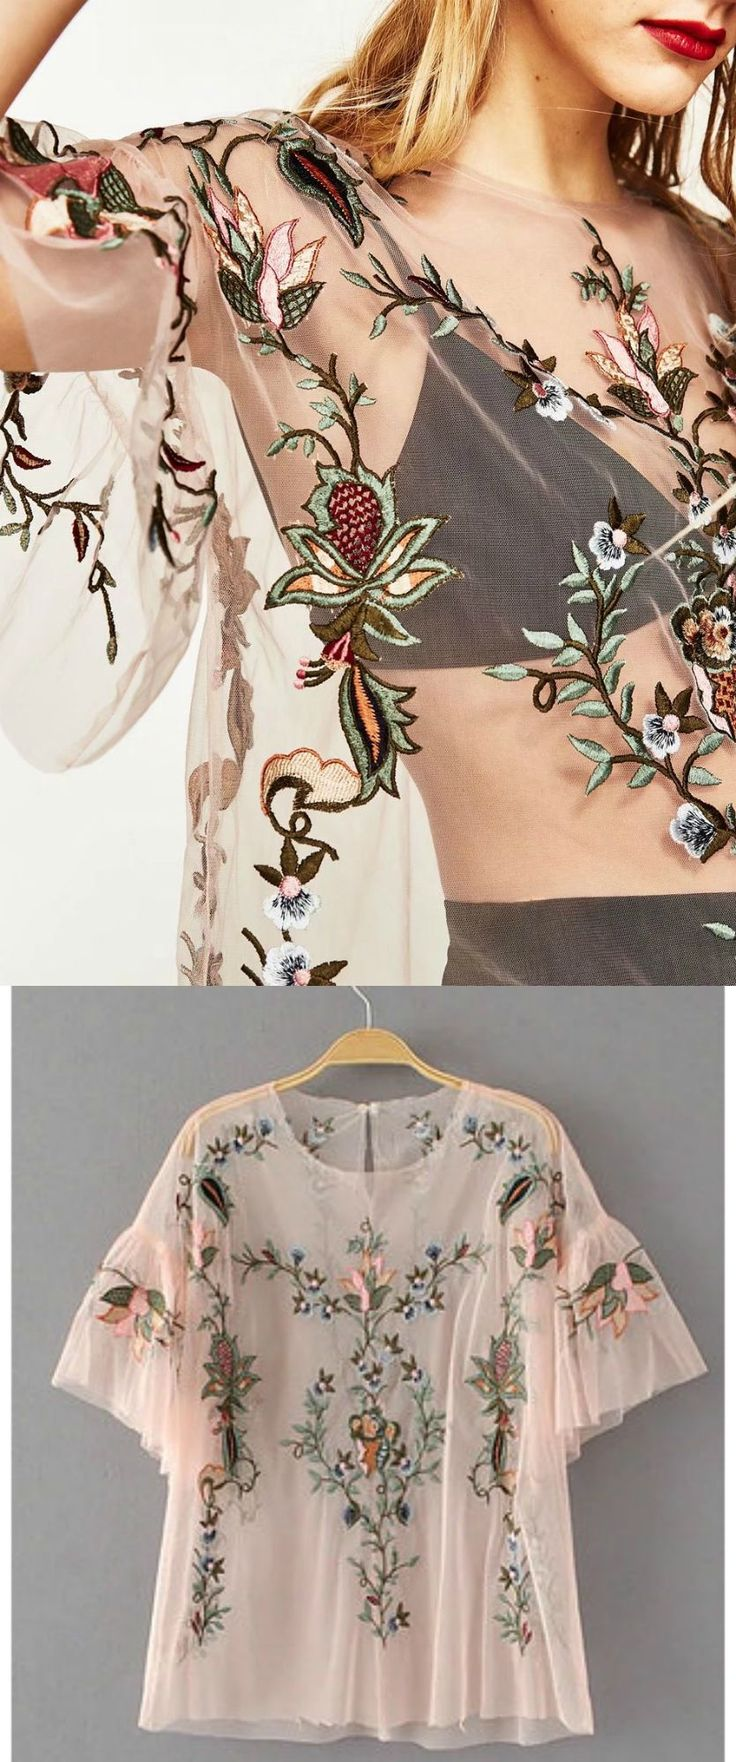 ❤️ A Gorgeous Embroidered Top as featured on PASABOHO. This top exhibit brilliant colors with gorgeous embroidered floral patterns. ❤️ outfit ideas :: street style :: boho chic :: outfit ideas :: boho clothing :: free spirit :: fashion trend :: embroidered :: flowers :: summer :: fabulous :: love :: street style :: fashion style :: boho style :: bohemian :: modern vintage :: ethnic tribal :: boho bags :: embroidery dress :: skirt :: cardigans :: jacket :: tops